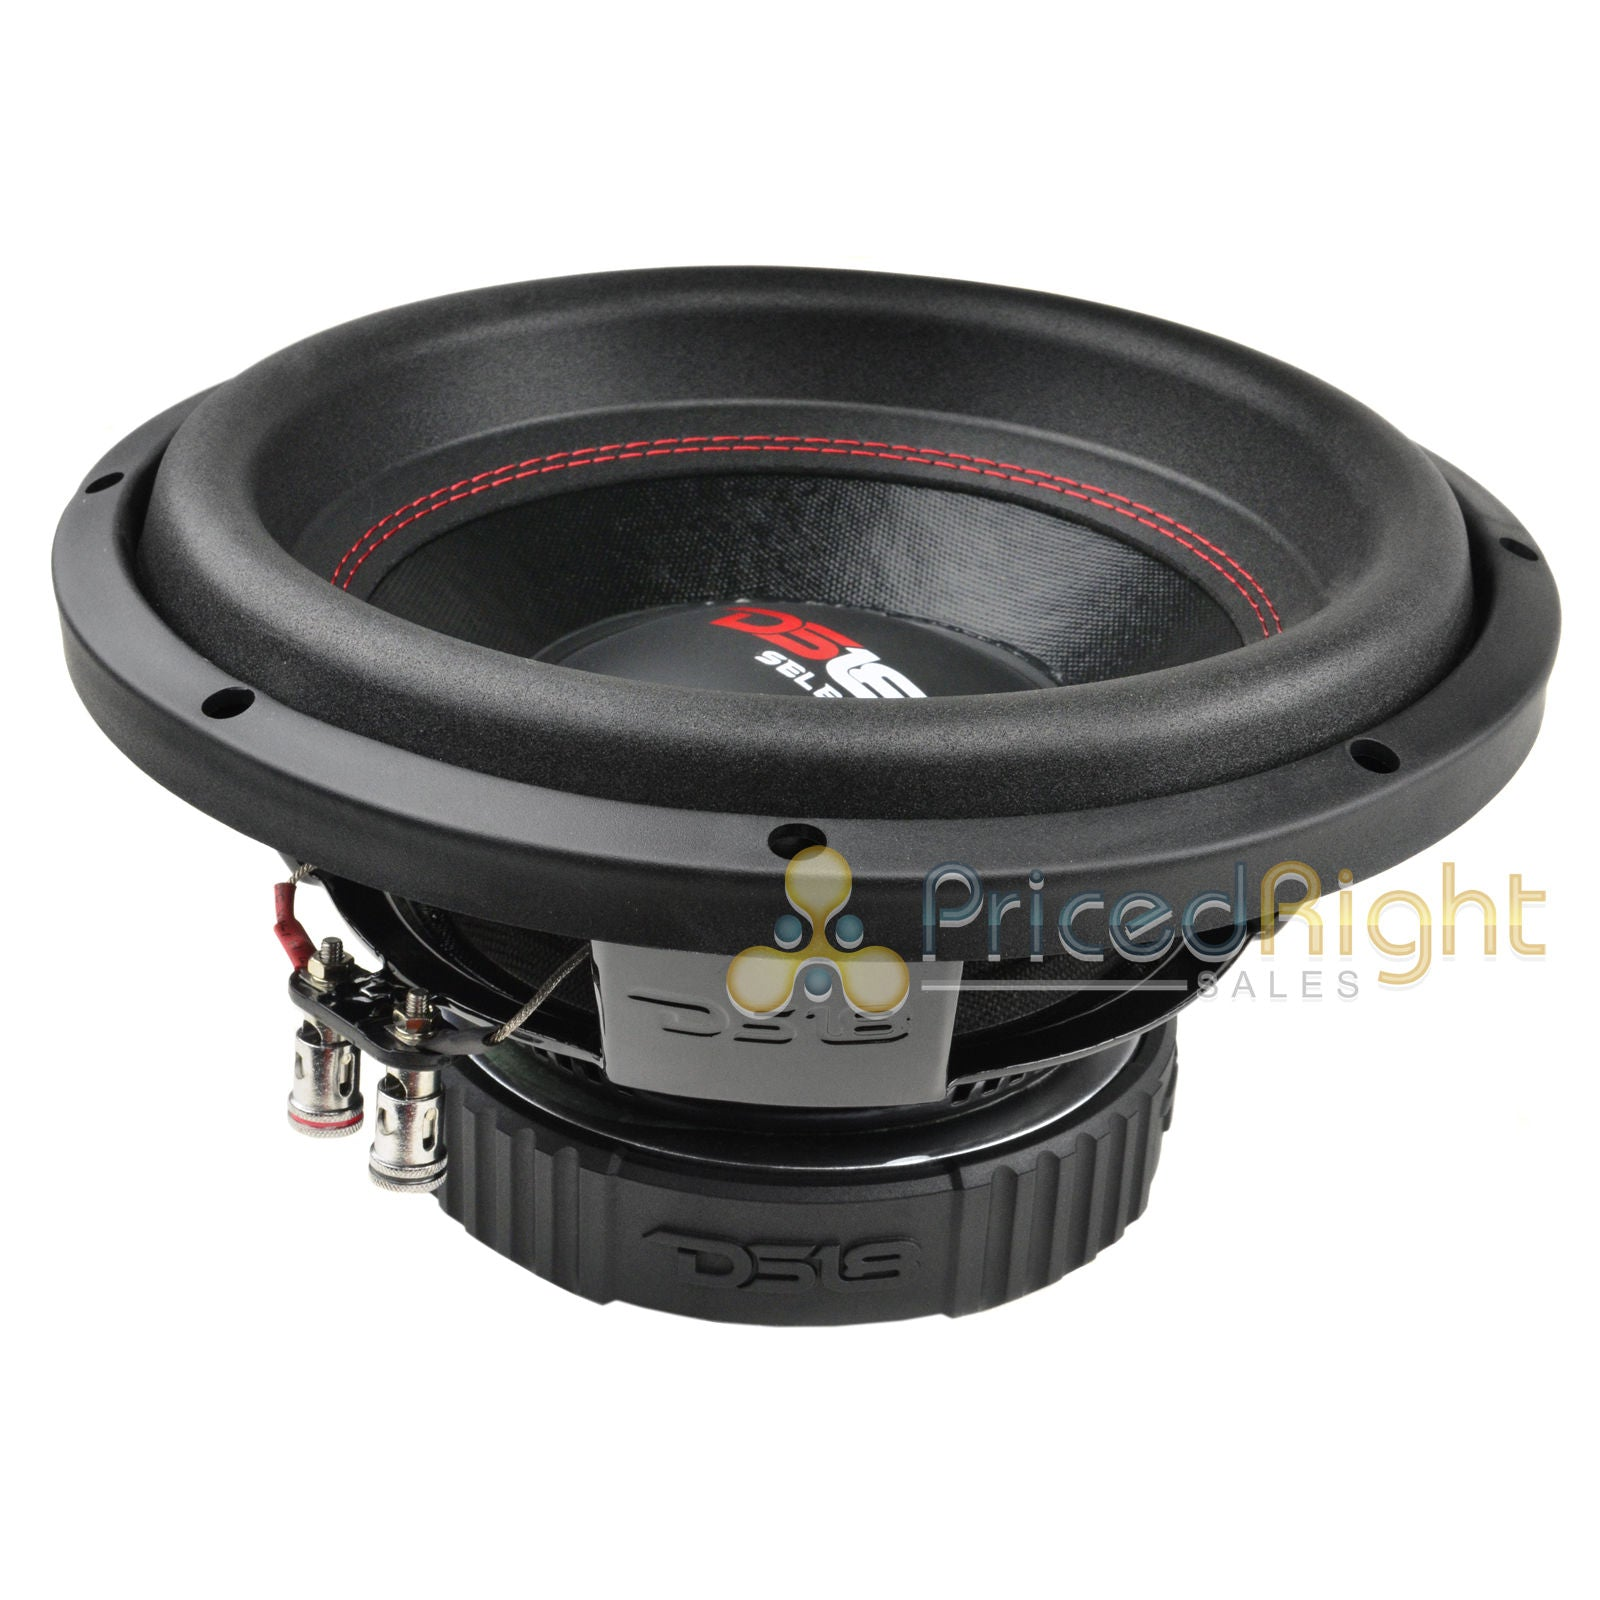 "2 DS18 SLC-10S 10"" Inch Subwoofers 440 Watts Max Power 4 Ohm Sub Select Series"